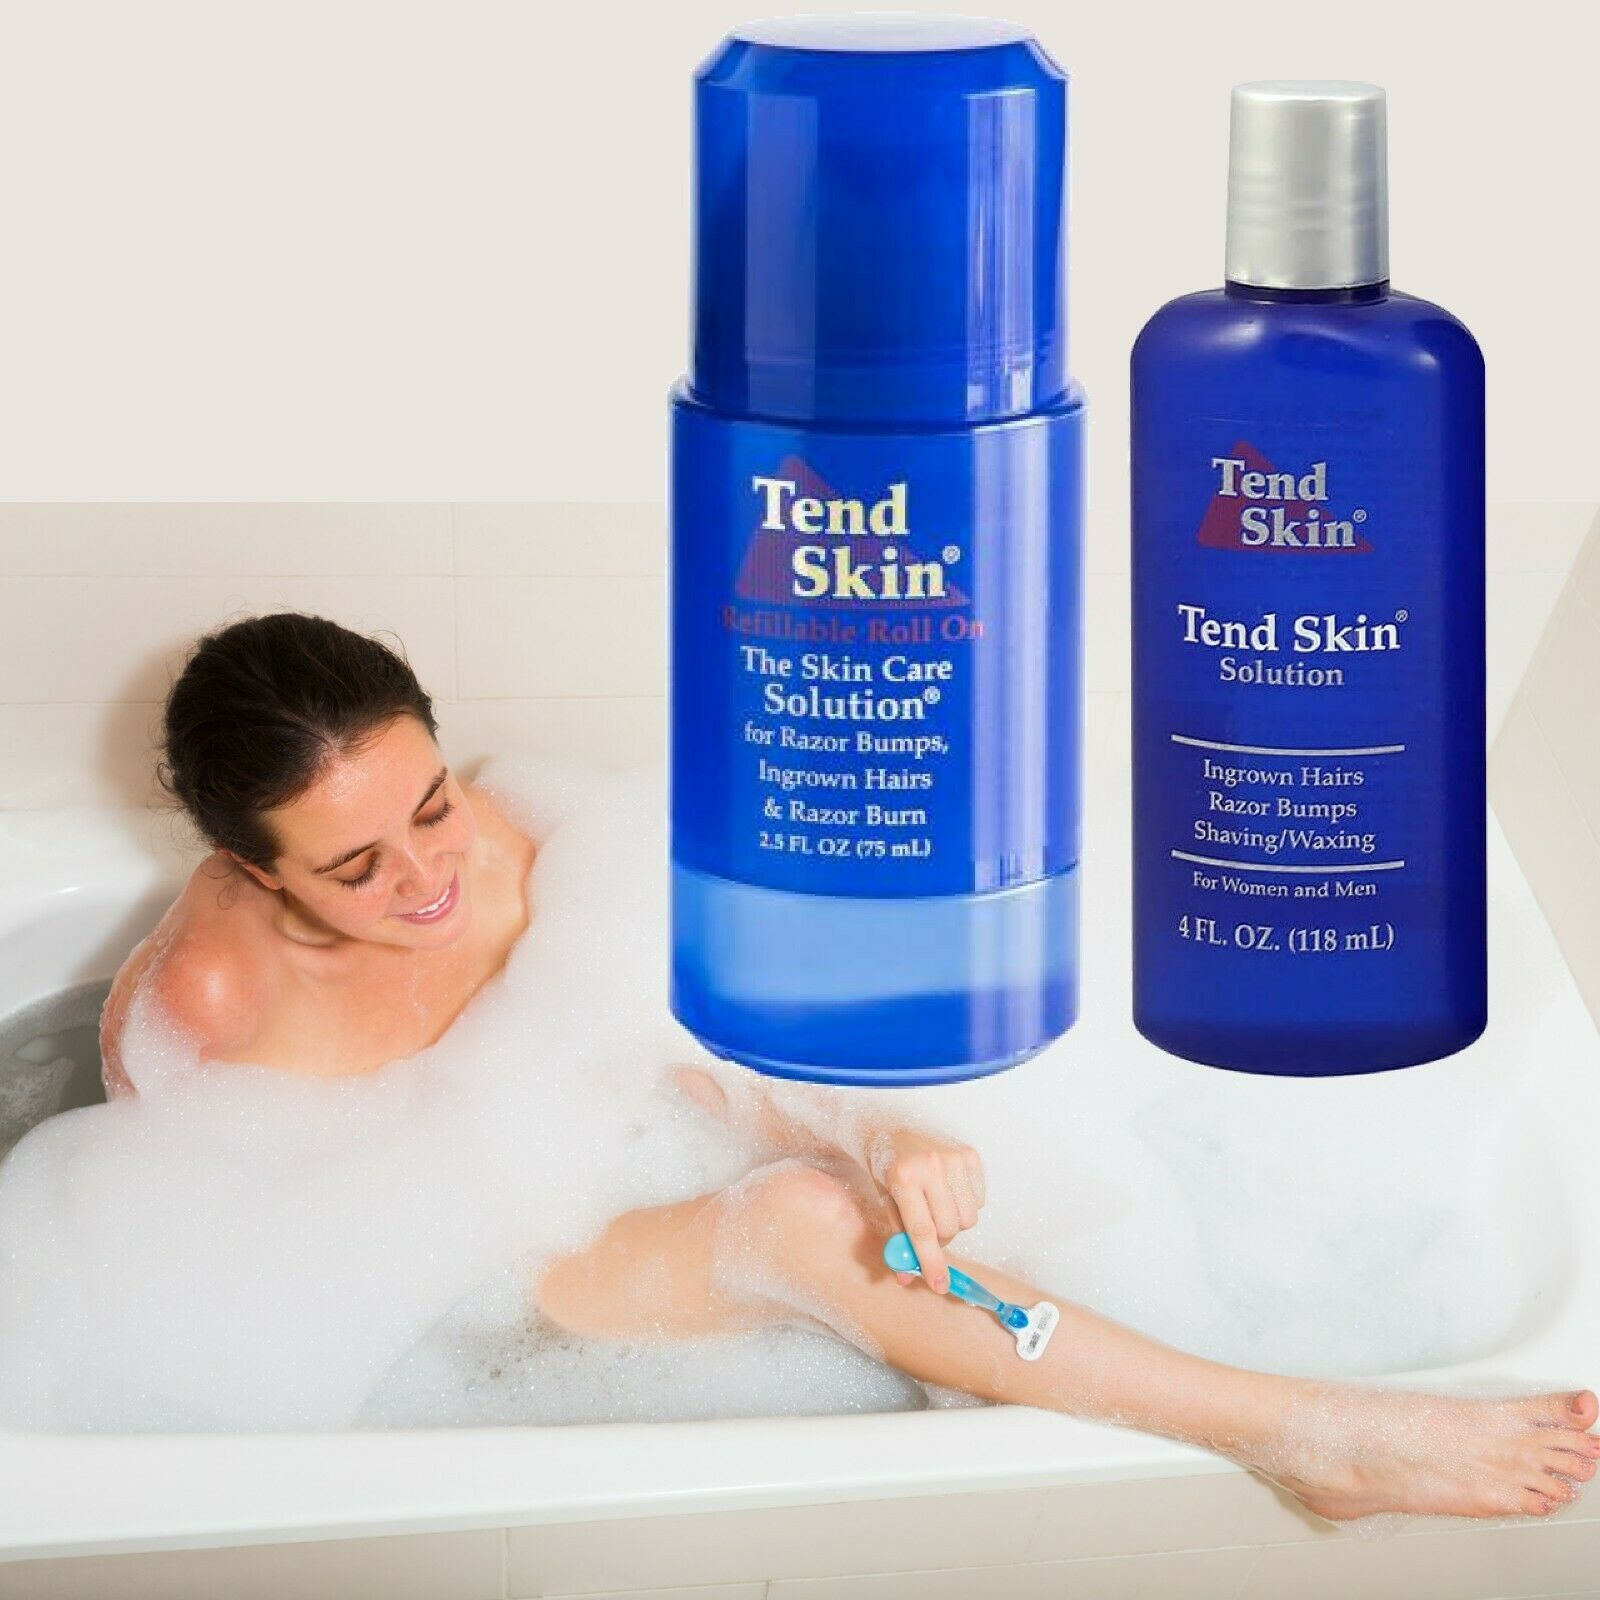 Tend Skin Kit 4oz Roll On Ingrown Hair Razor Bumps Burns Exp03 2021 607575000253 Ebay In 2020 Tend Skin Ingrown Hair Hair Kit